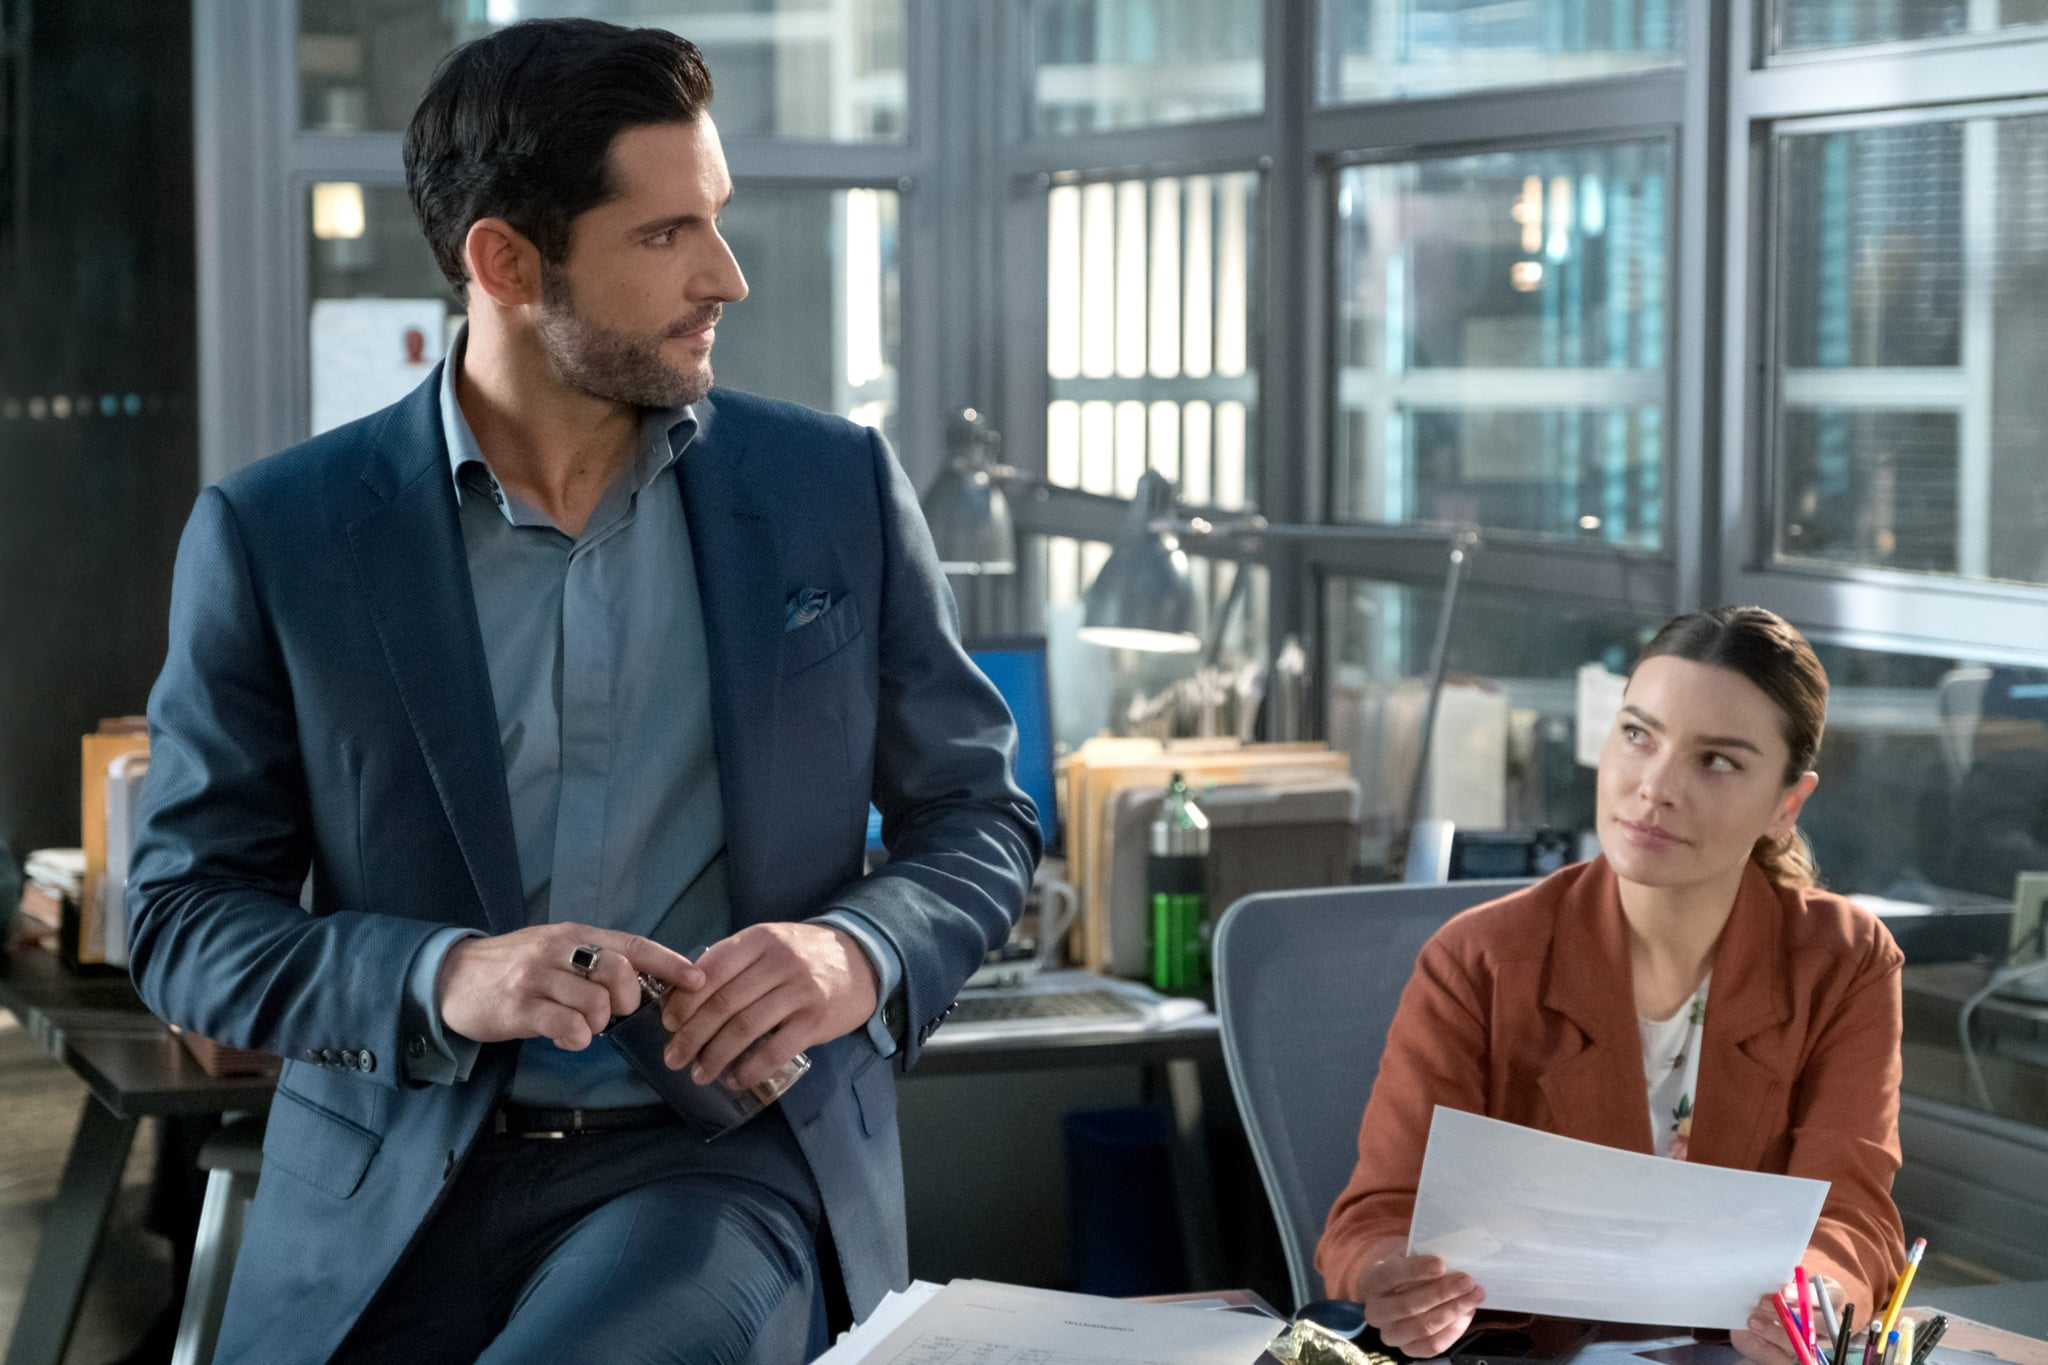 LUCIFER, from left: Tom Ellis, Lauren German, 'O, Ye of Little Faith, Father', (Season 4, ep. 403, aired May 8, 2019). photo: John P. Fleenor / Netflix / courtesy Everett Collection